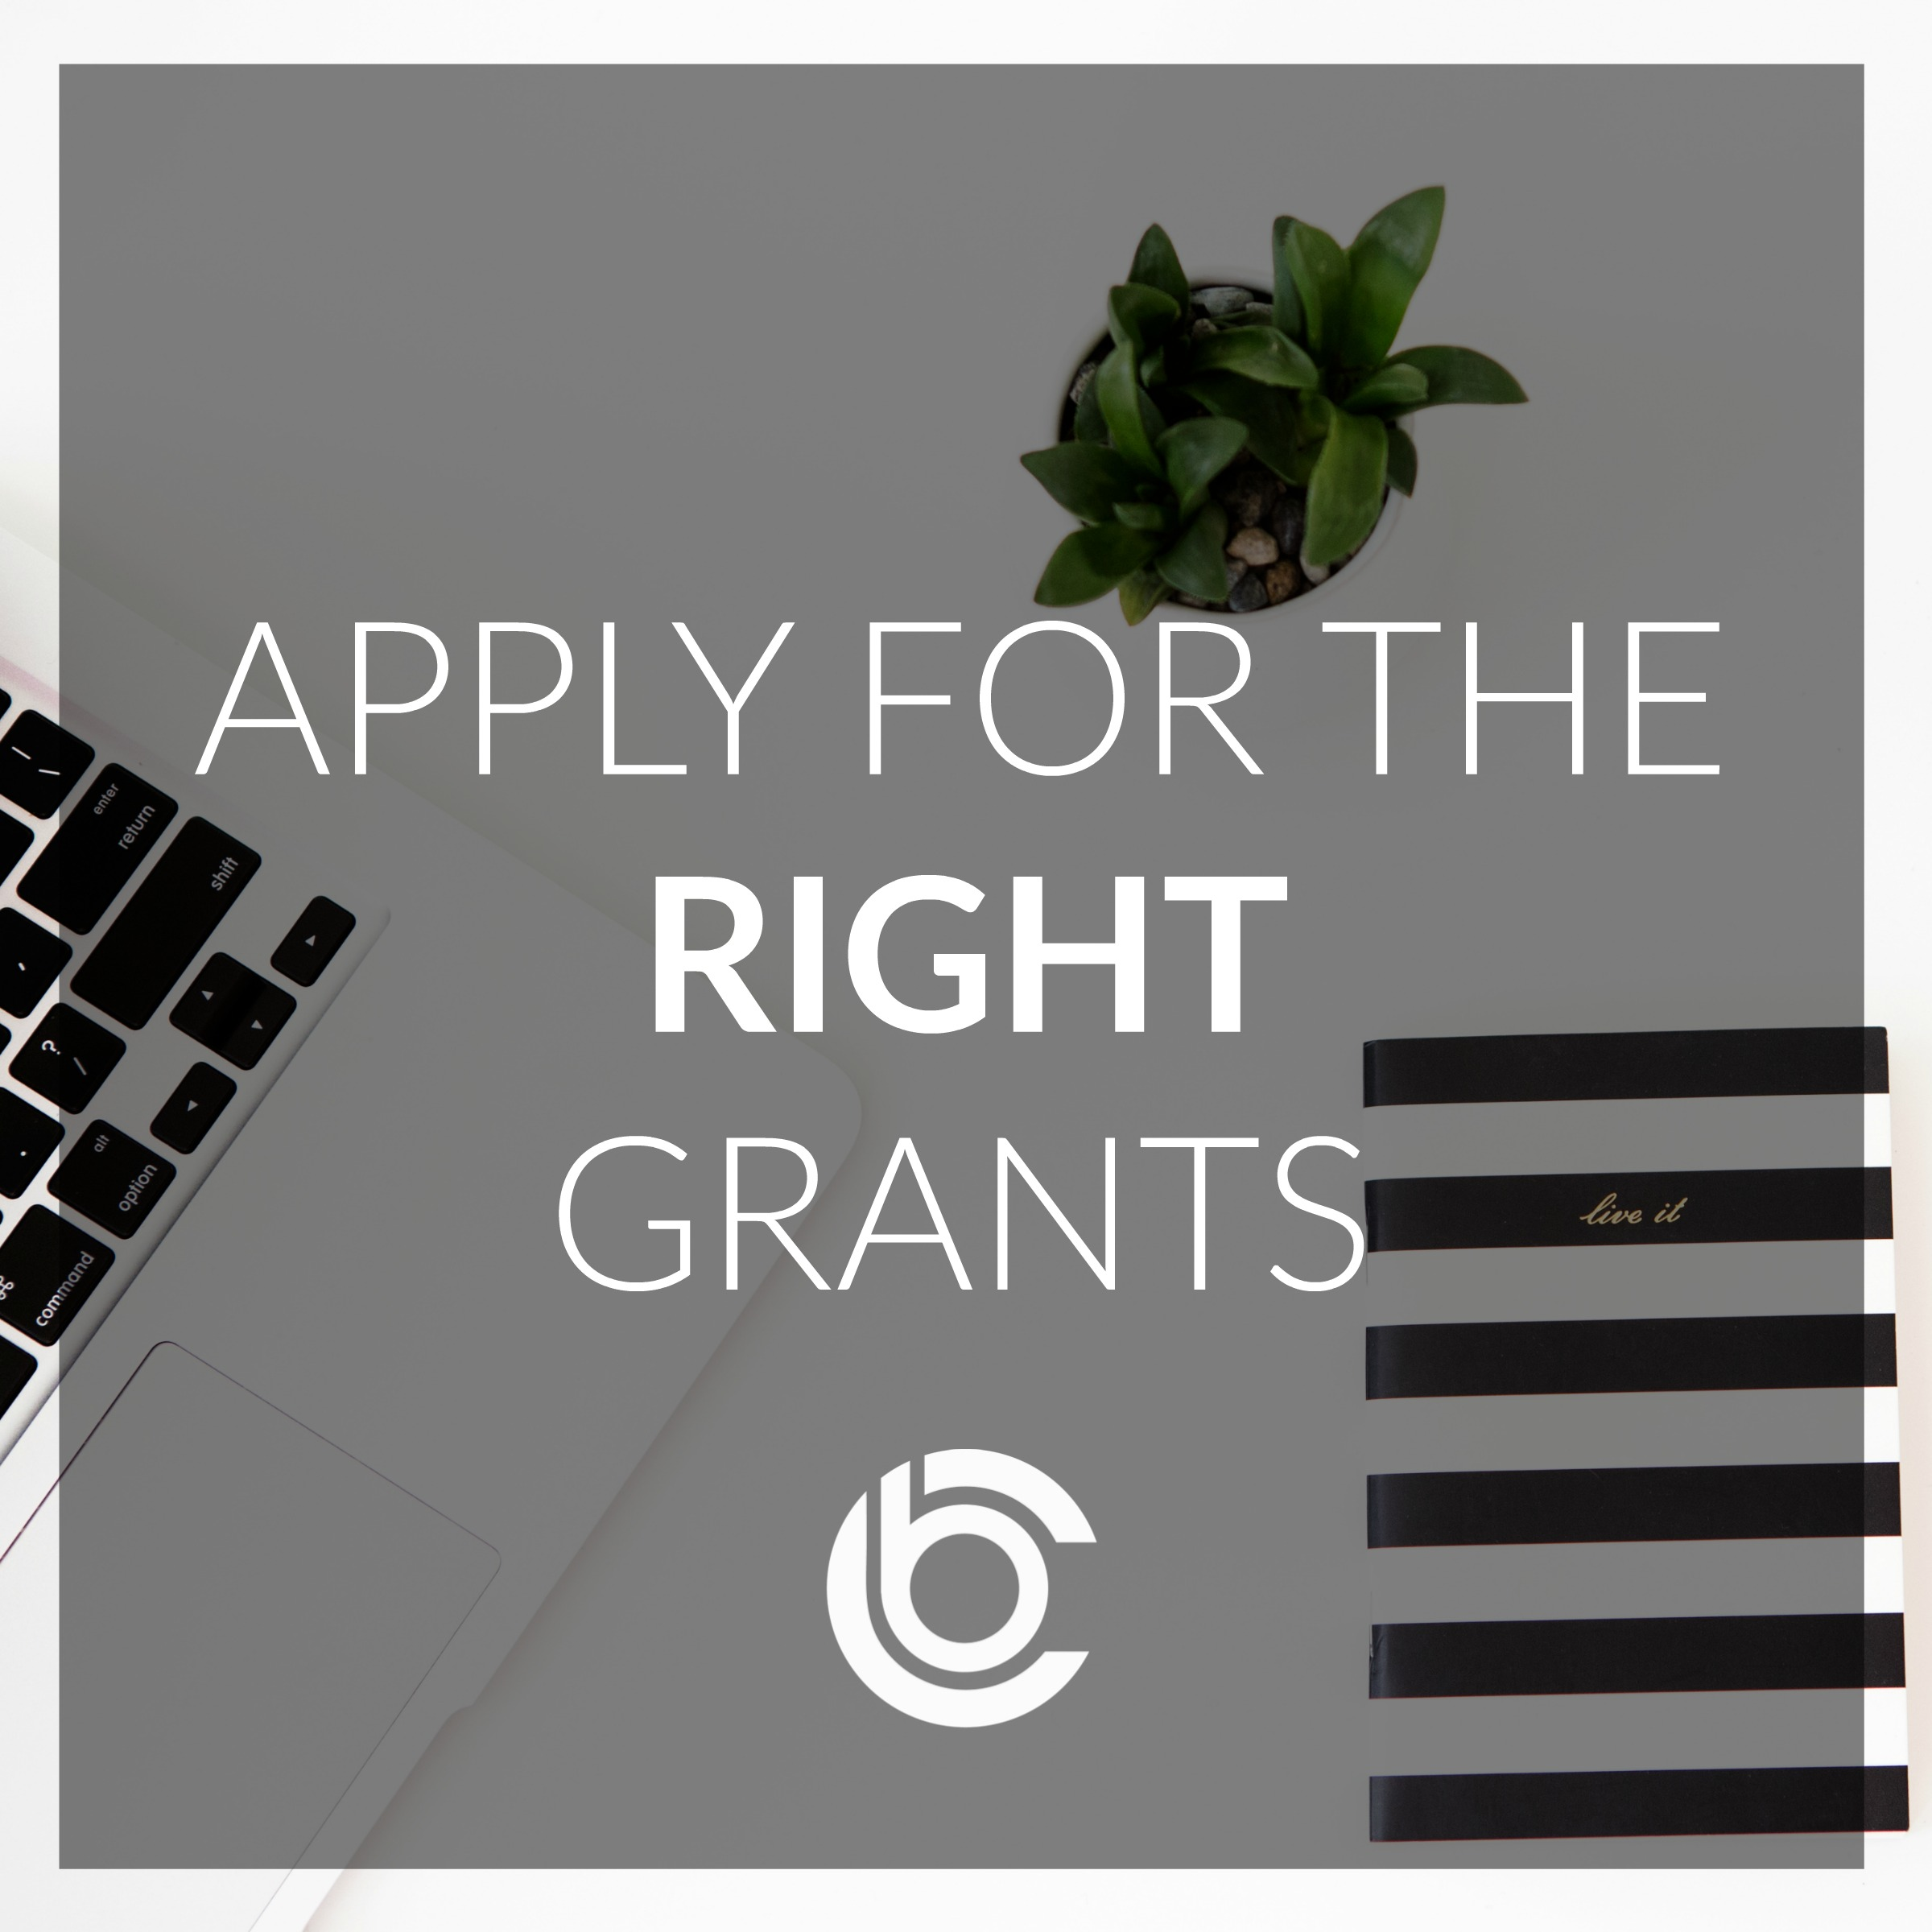 Apply for the RIGHT grants.jpg